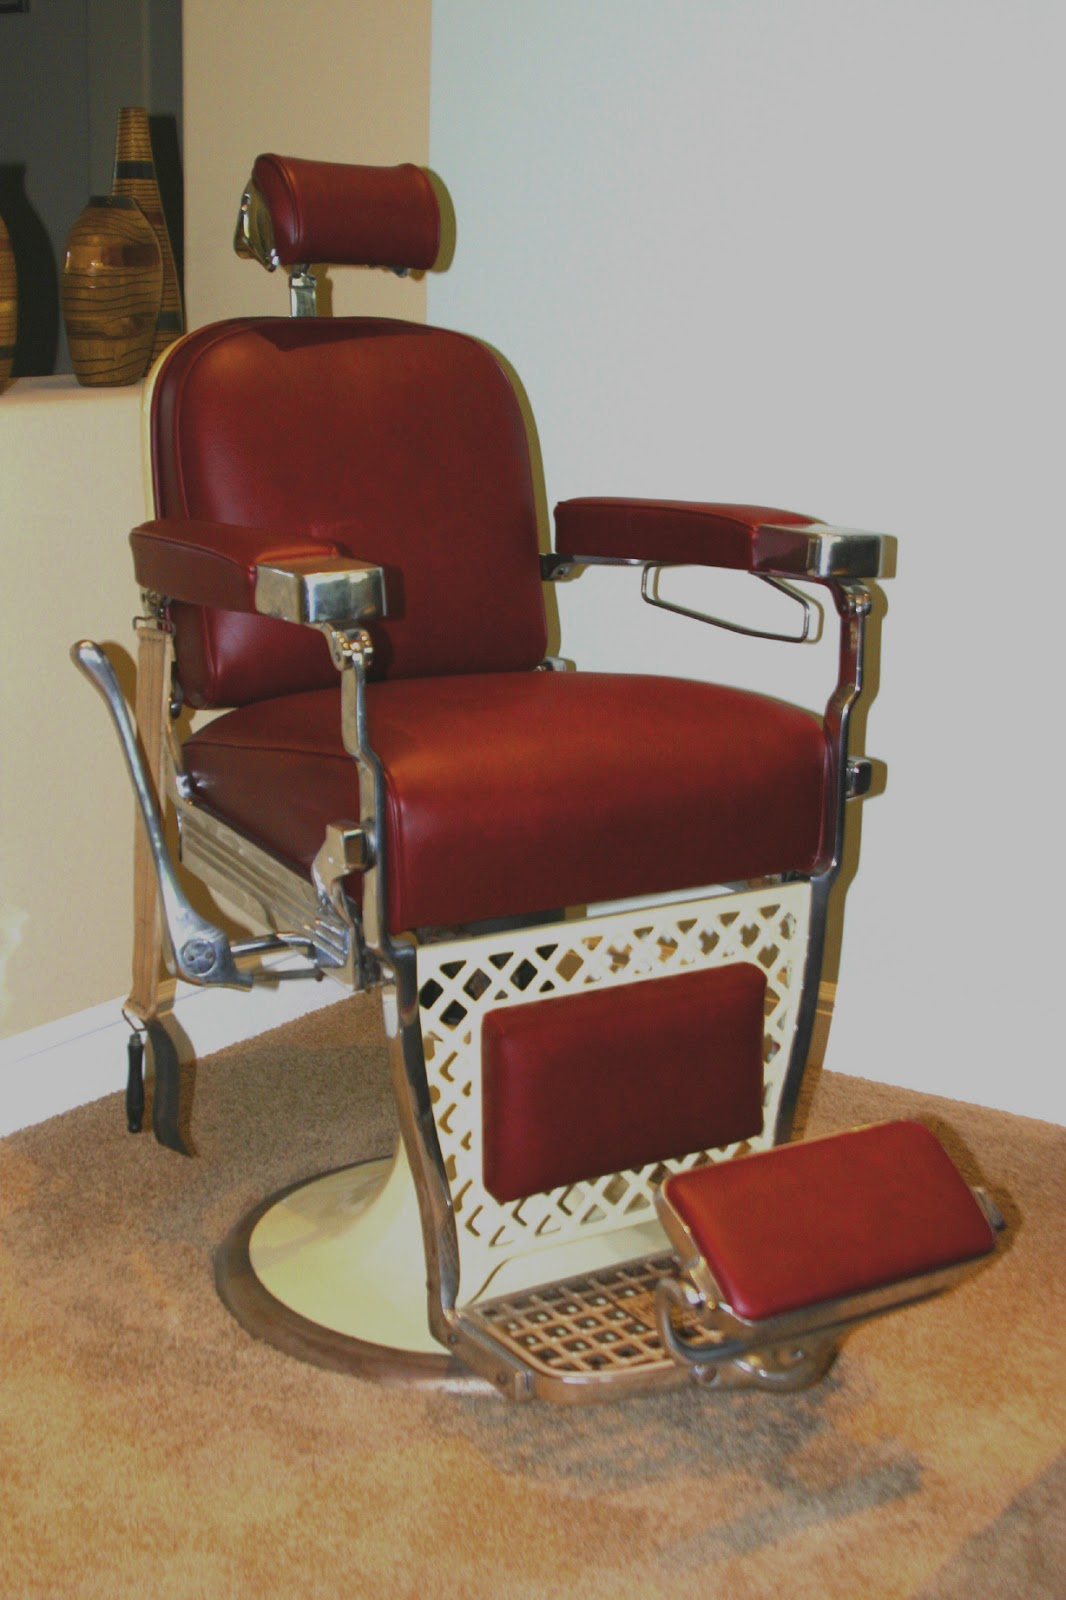 Antique Wood Barber Chair Comfy Chairs For Living Room Girl Photos มถนายน 2013